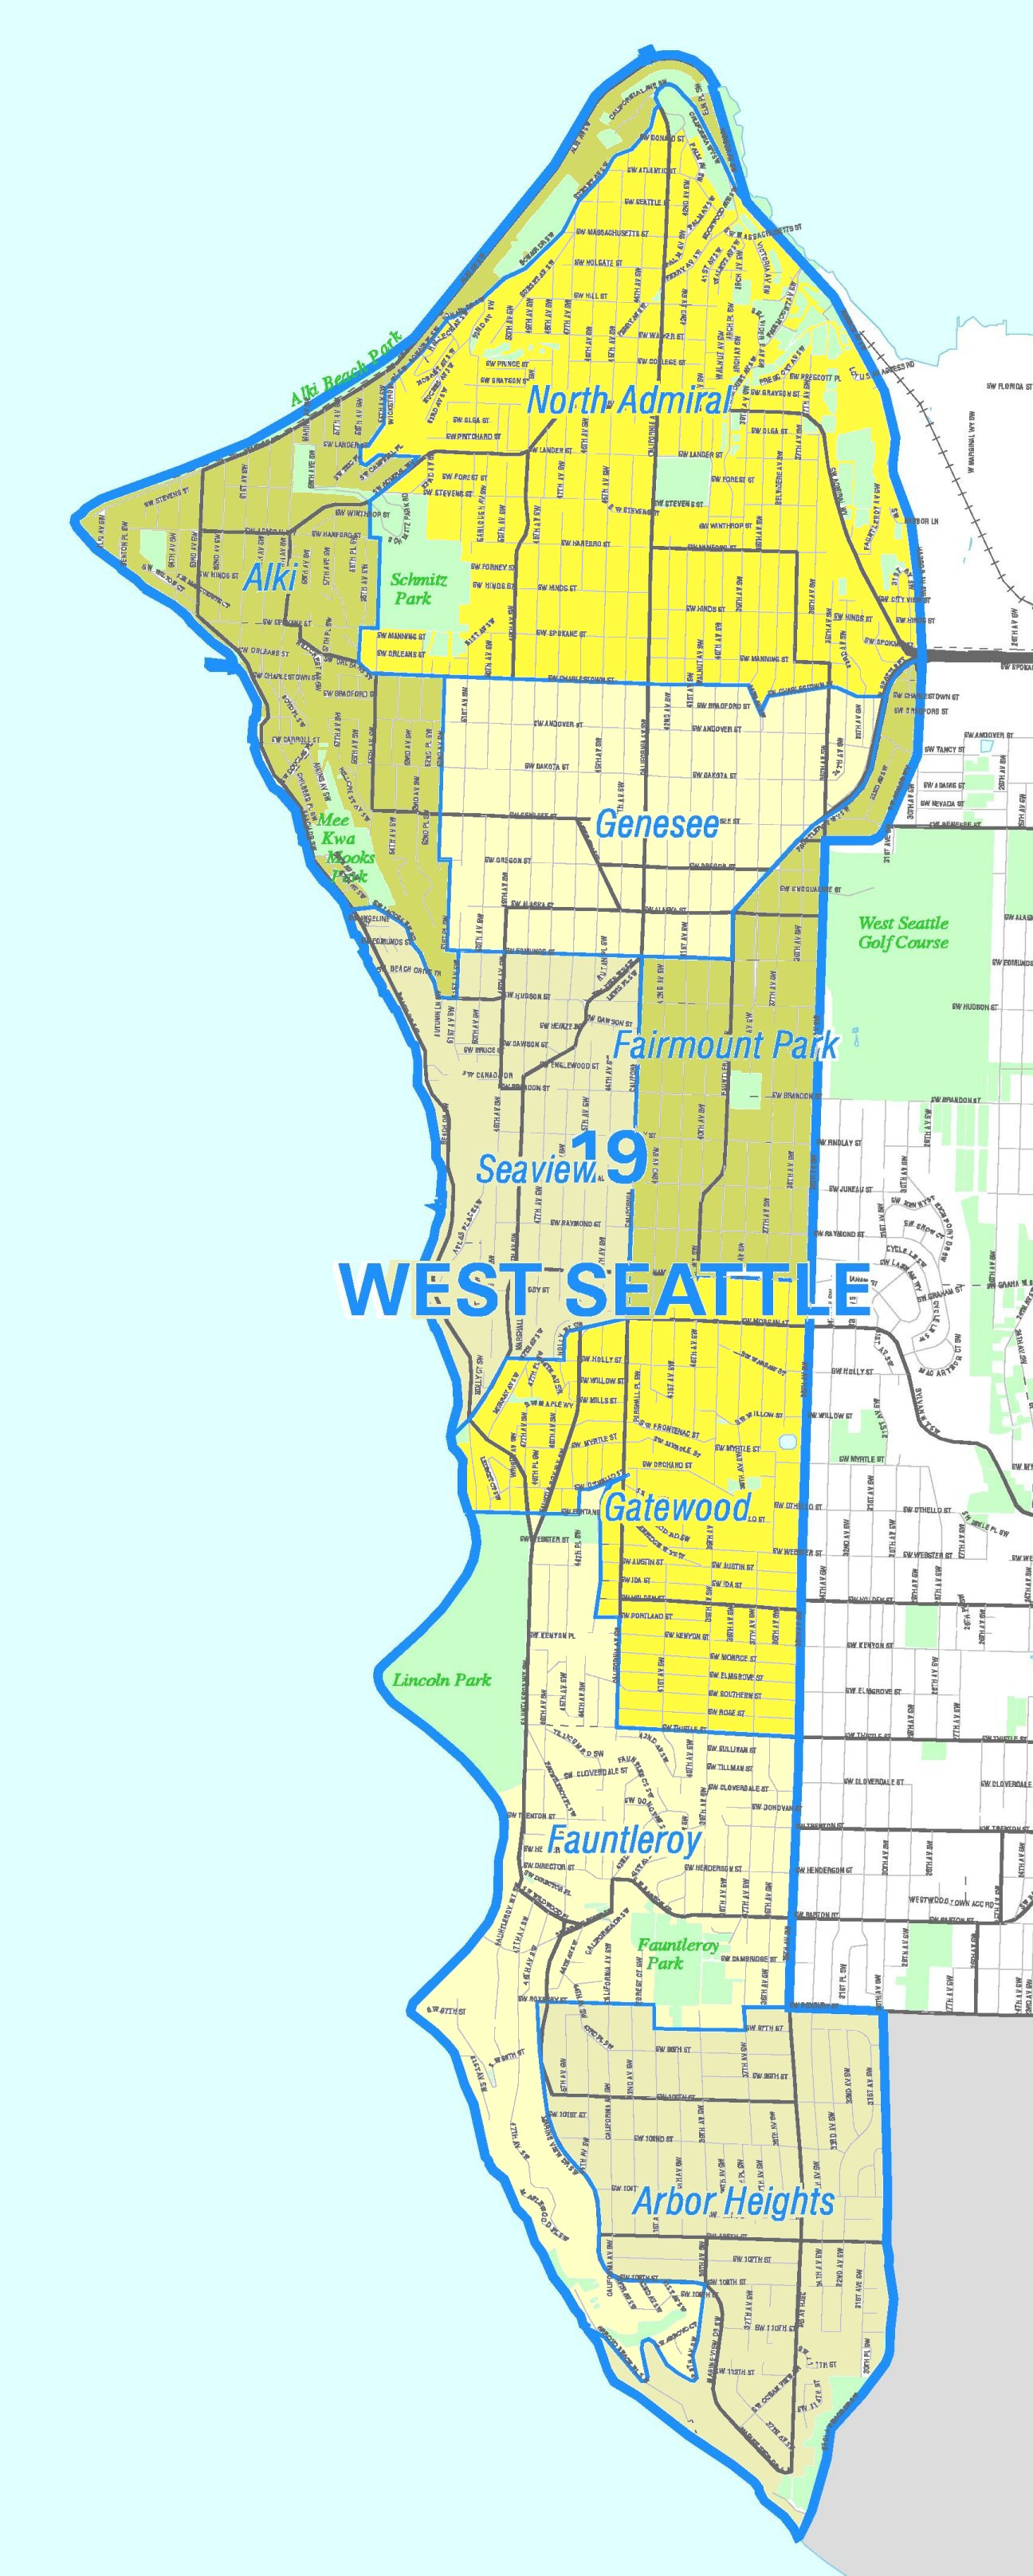 File:Seattle   West Seattle map.   Wikimedia Commons